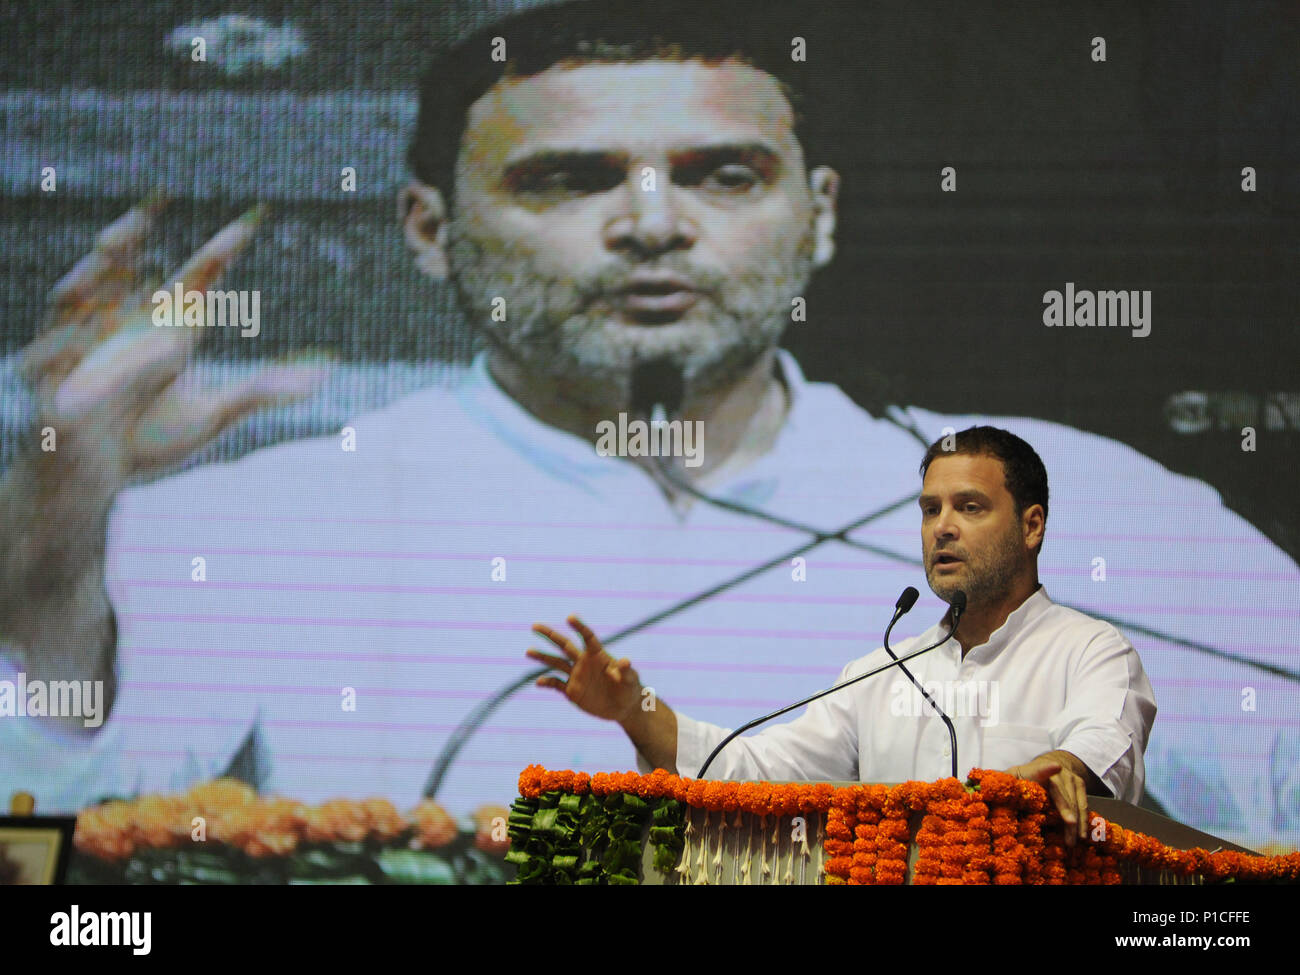 New Delhi, India. 11th June, 2018. Rahul Gandhi, president of India's main opposition party the Indian National Congress (INC), addresses the national convention for Other Backward Classes (OBC) in New Delhi, India, June 11, 2018. Credit: Stringer/Xinhua/Alamy Live News - Stock Image